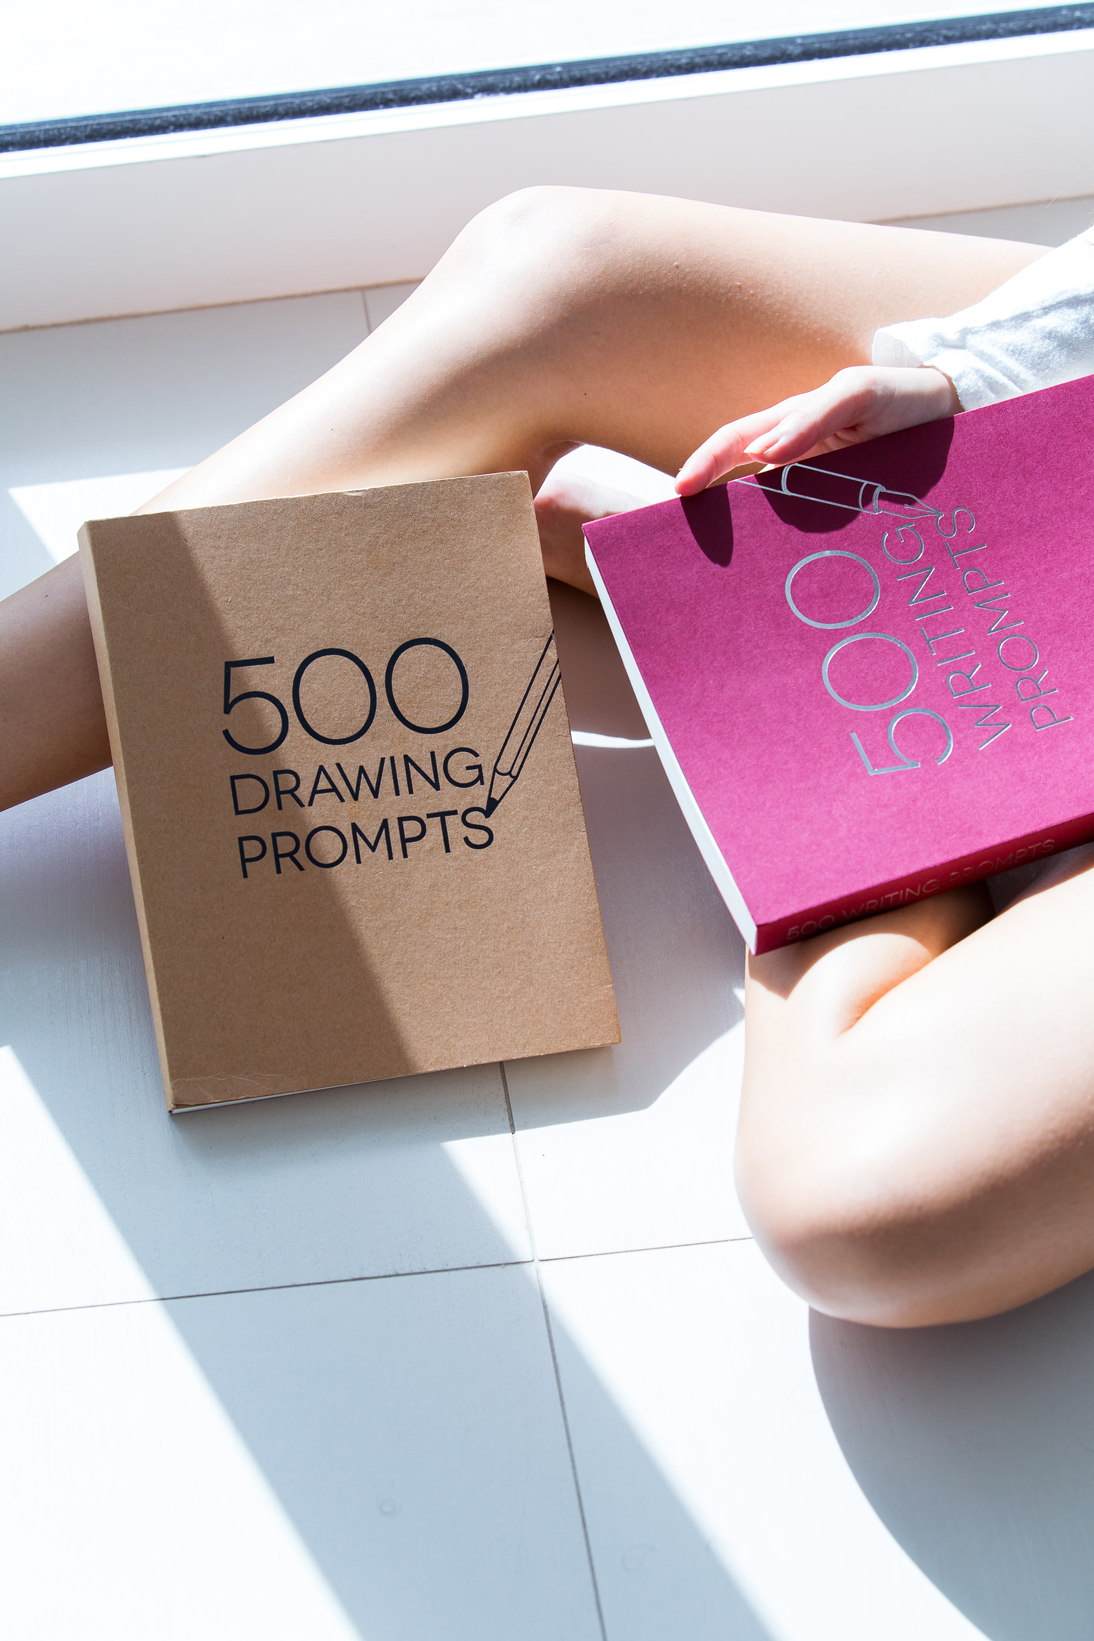 300 500 Drawing Prompts